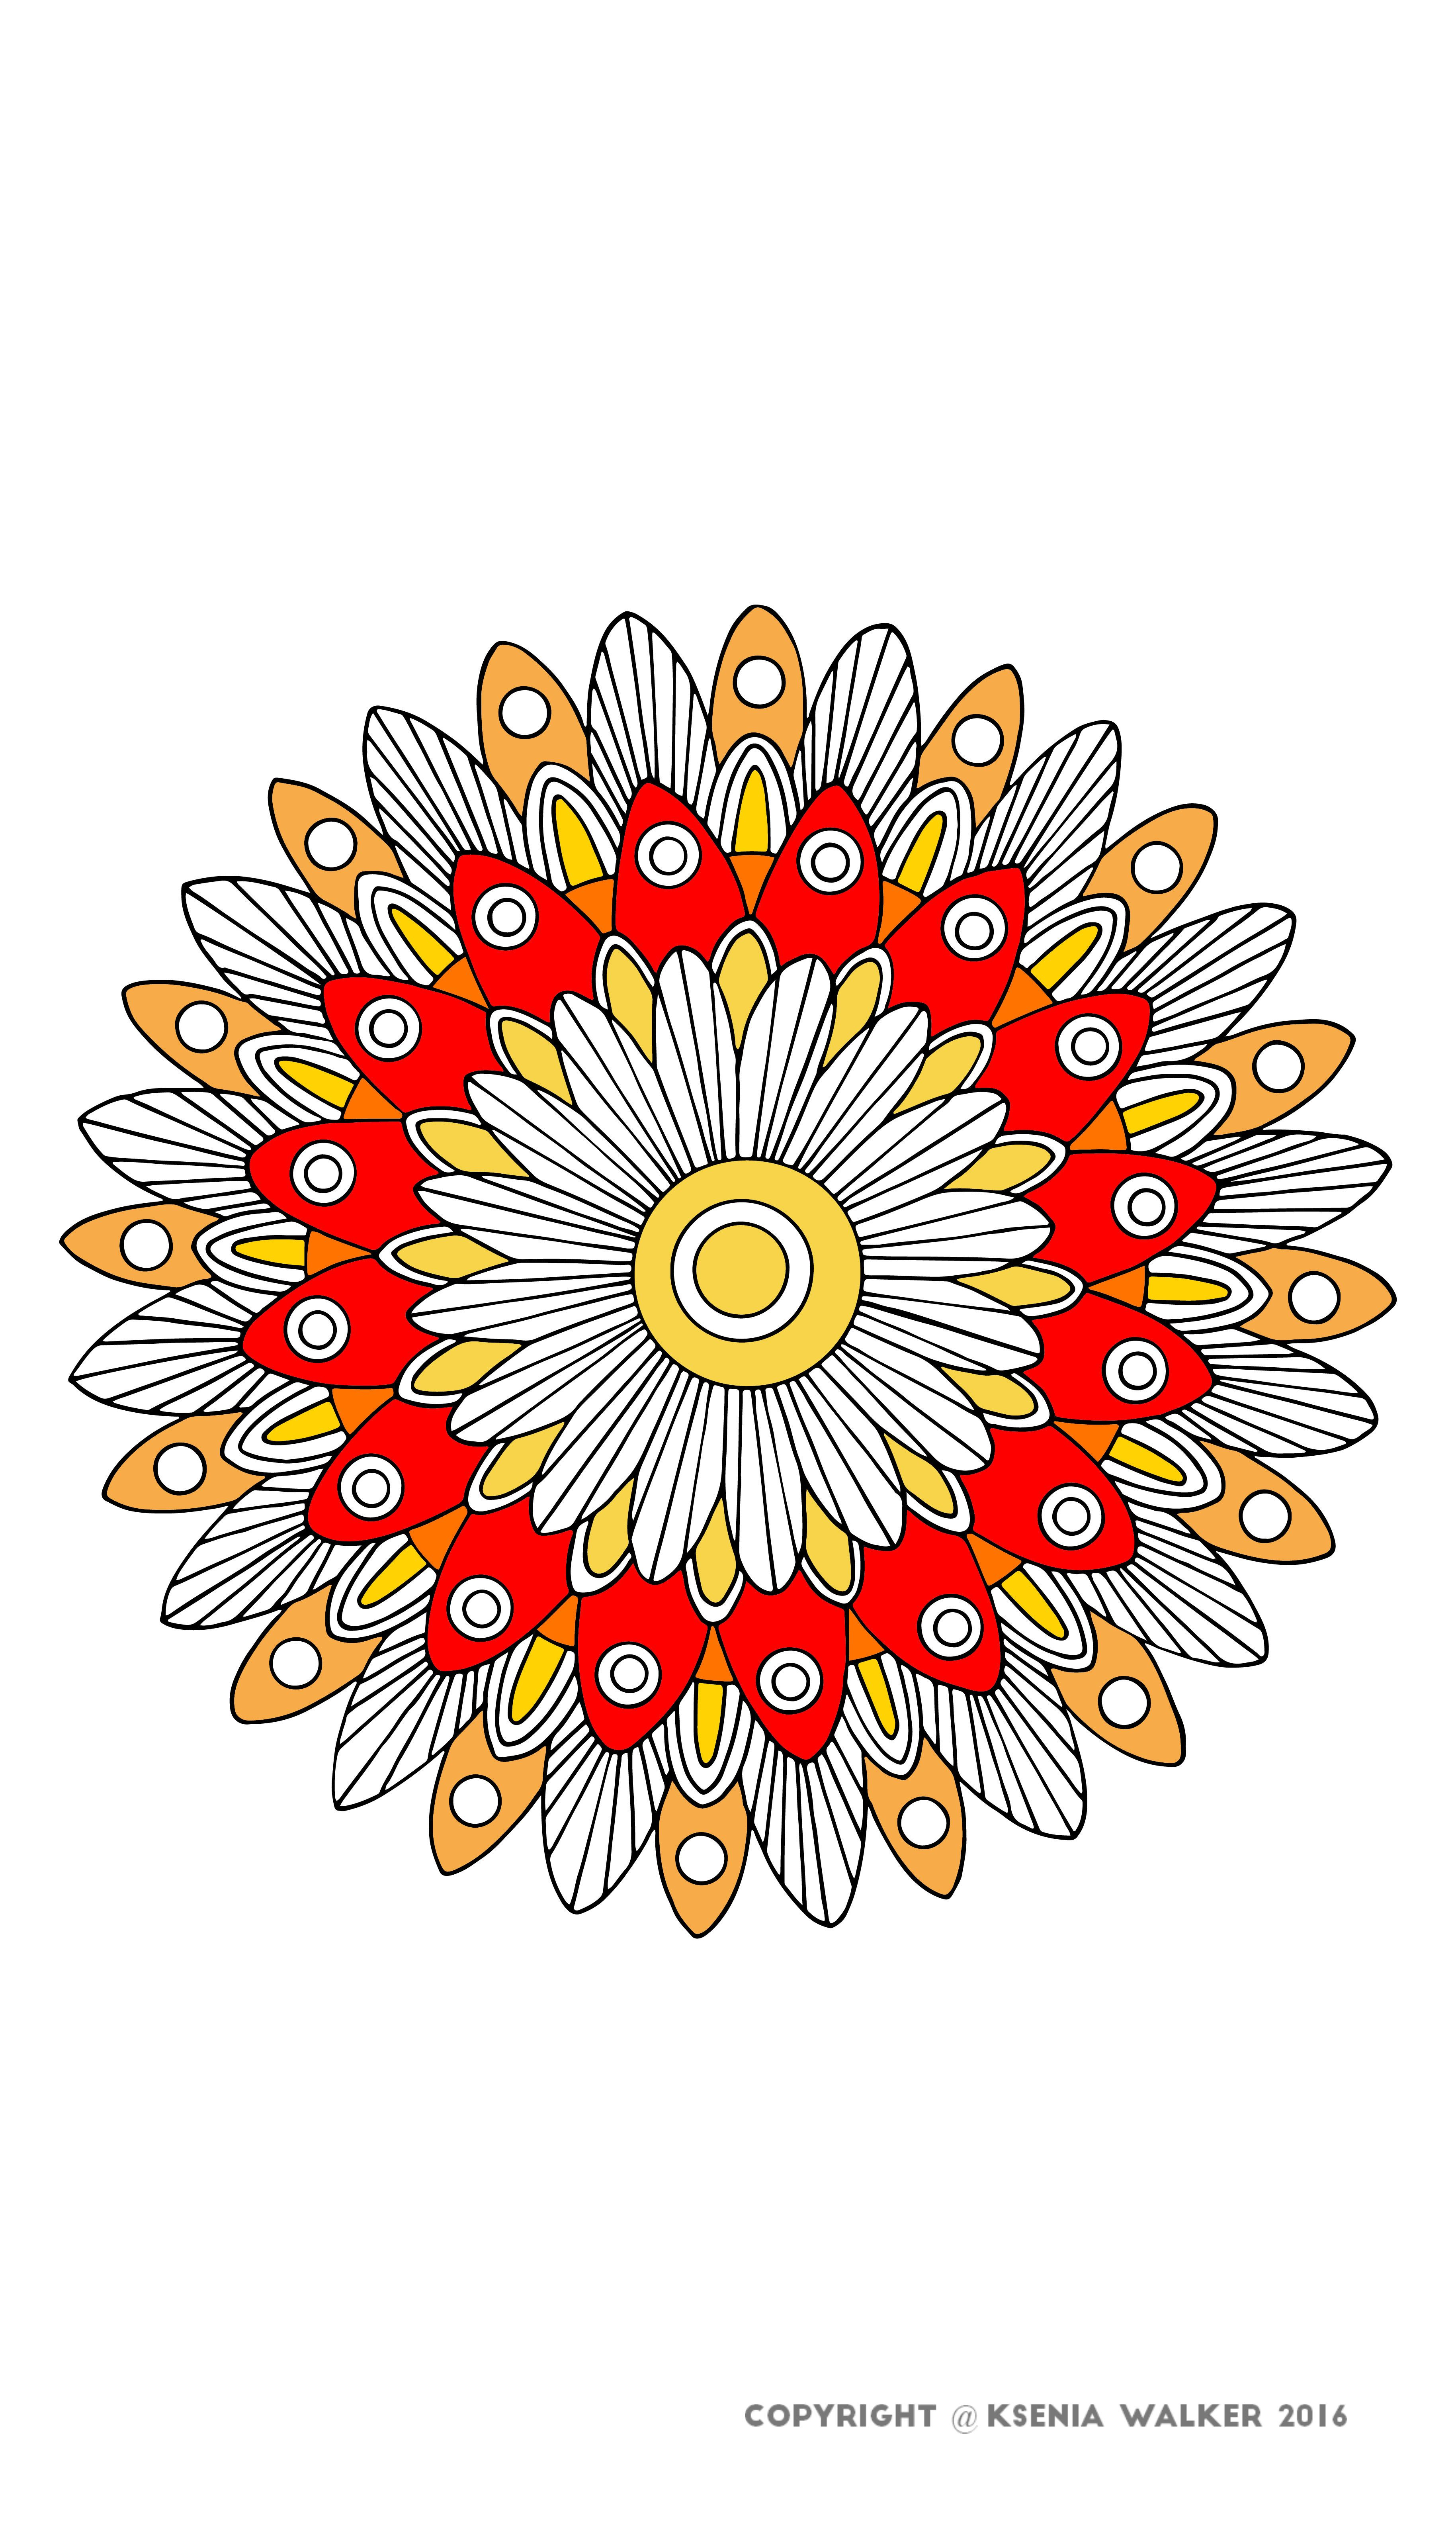 coloring, coloring page, coloring book, mandala, zentangle, ksenia ...